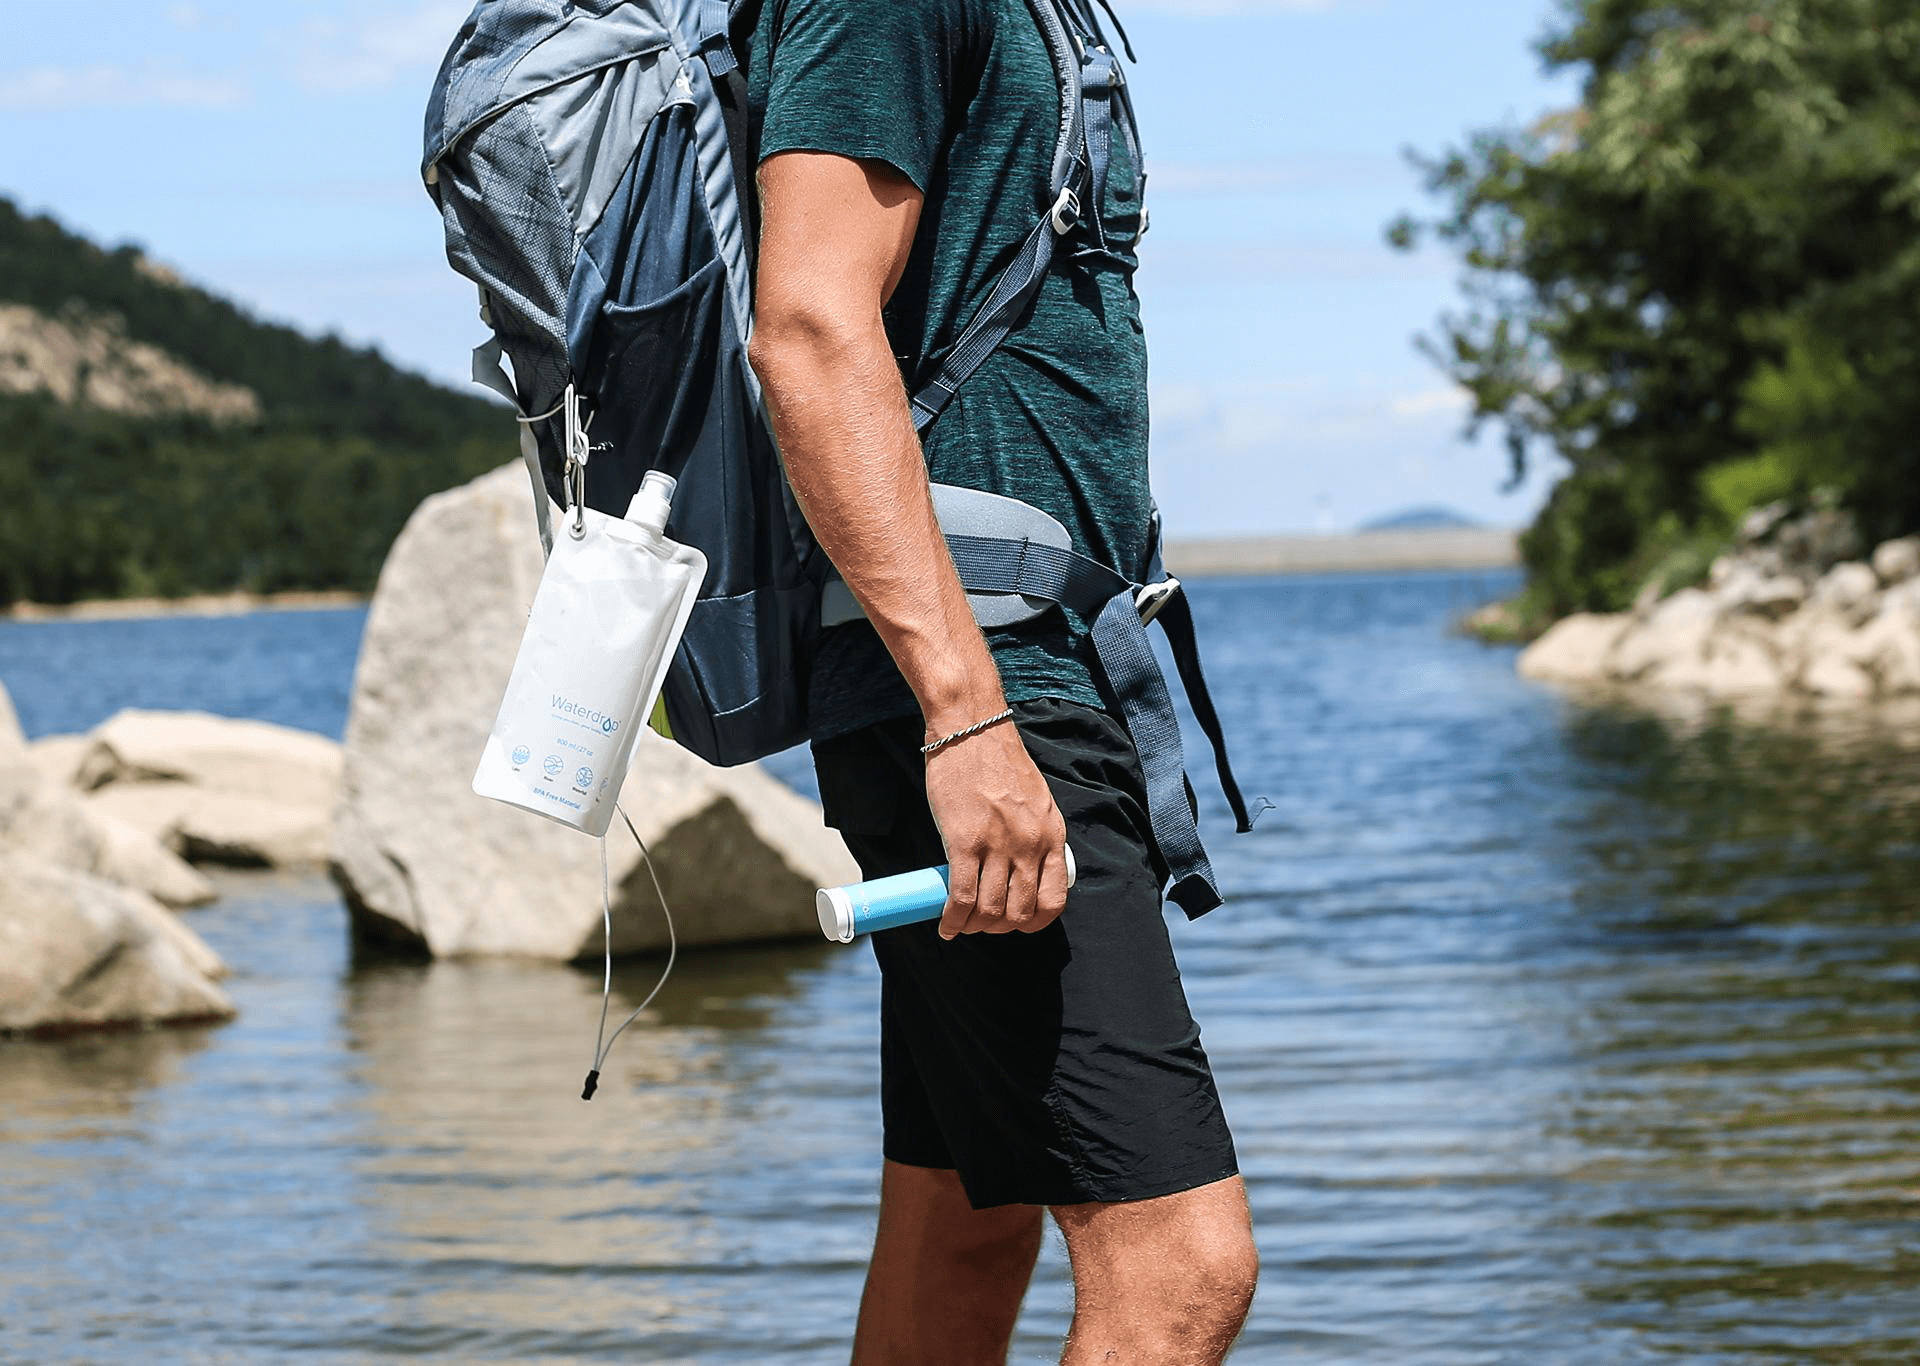 A person walking by the river holding a water filter straw in his right hand and a water pouch hanging on his backpack